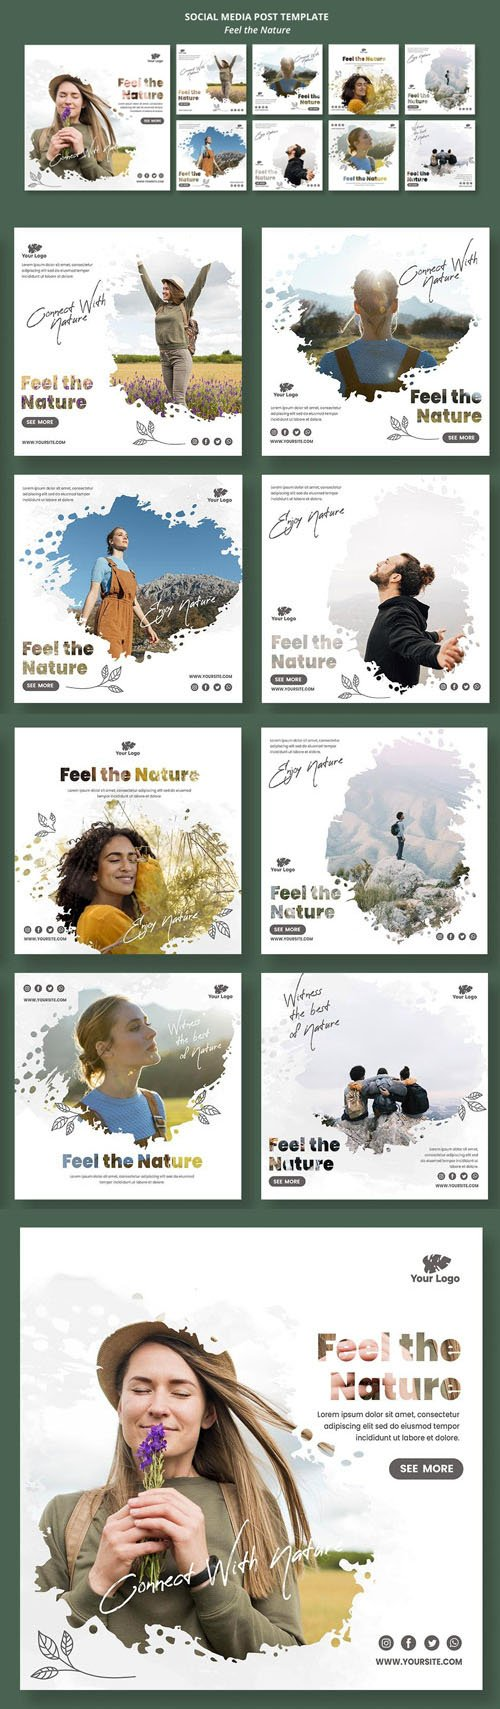 Feel The Nature - Social Media Post PSD Template